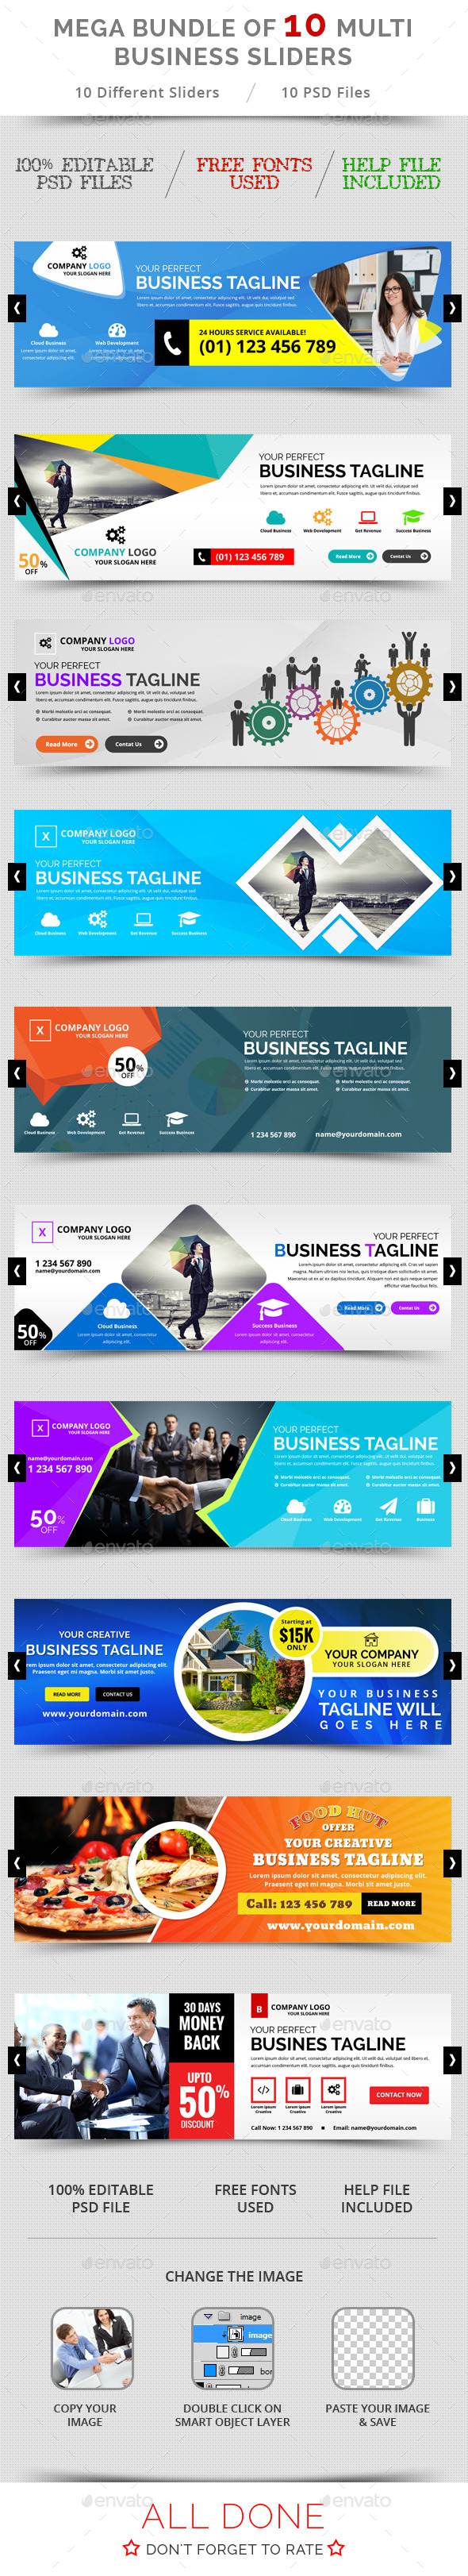 Bundle of 10 Multi Business Sliders - Sliders & Features Web Elements